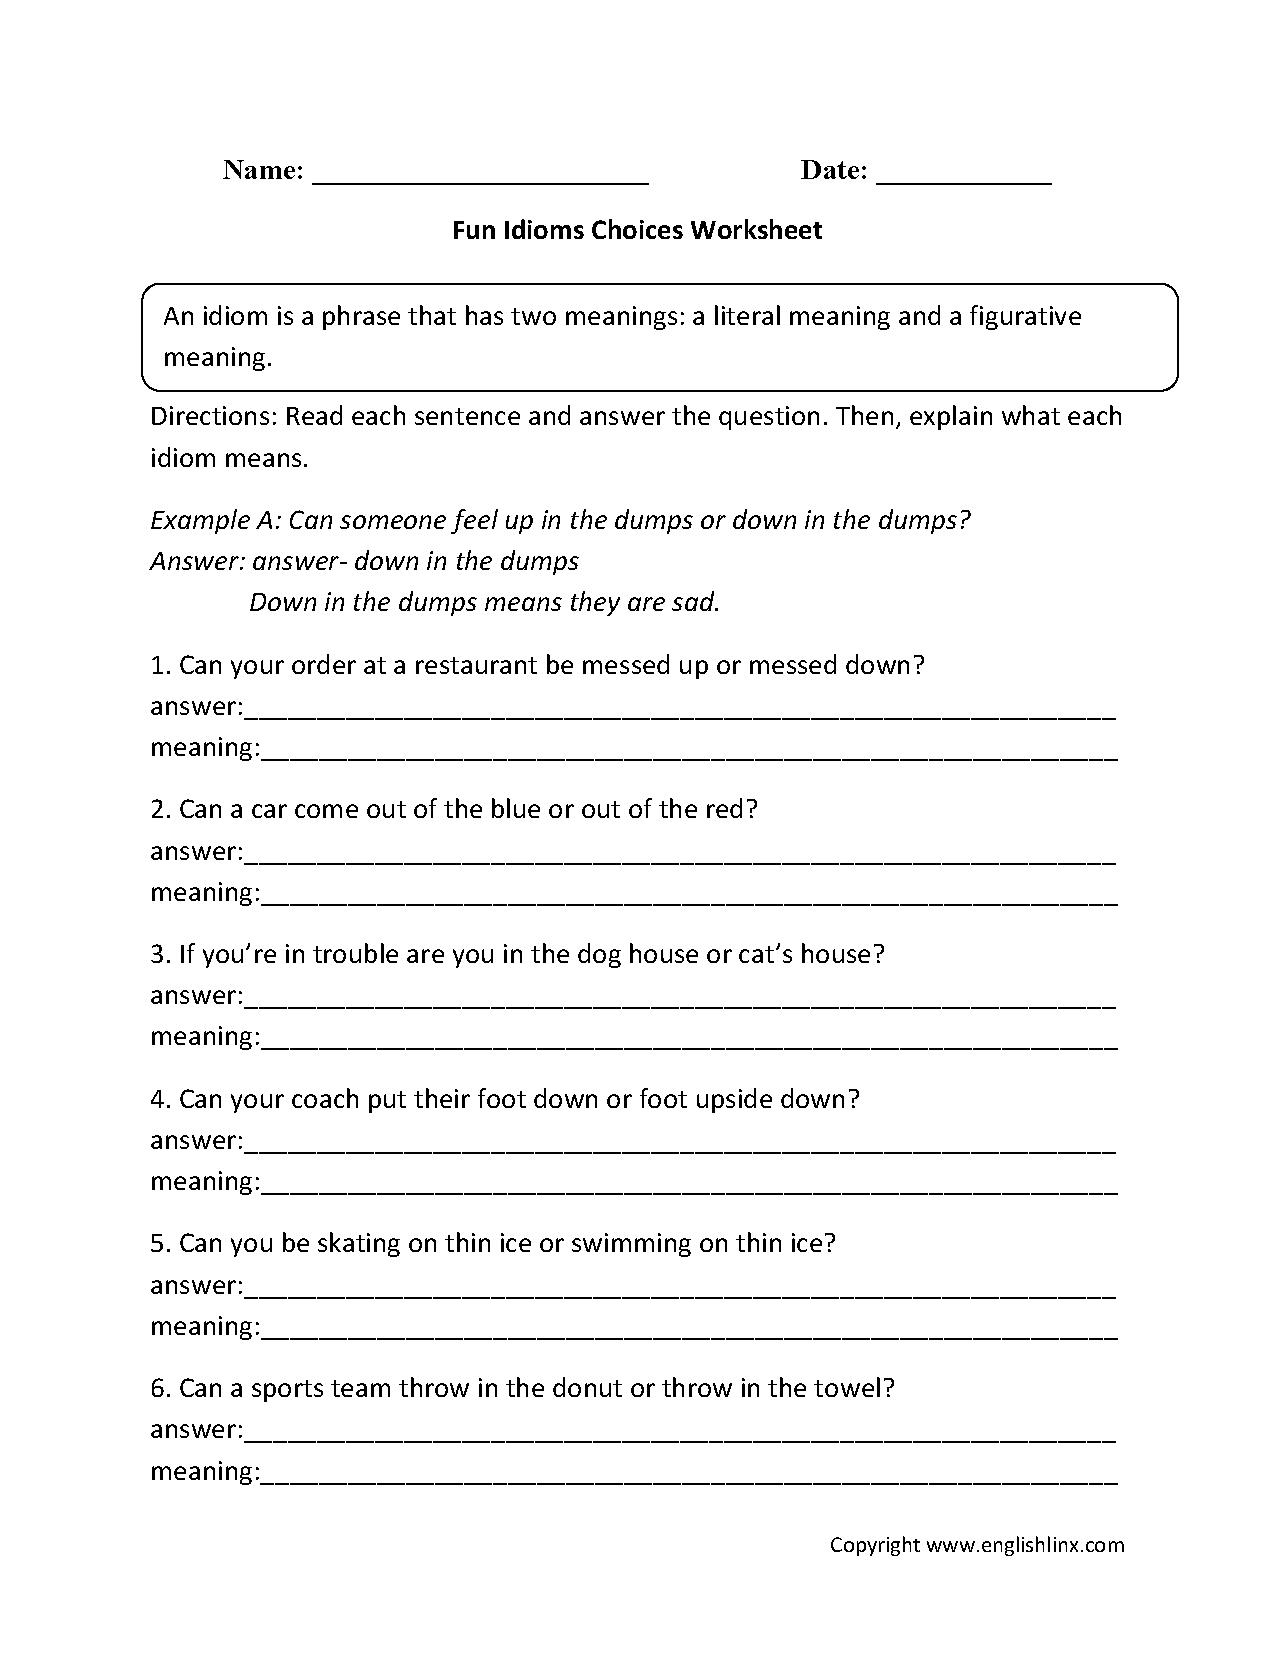 hight resolution of Idioms Worksheets   Fun Idioms Choices Worksheets